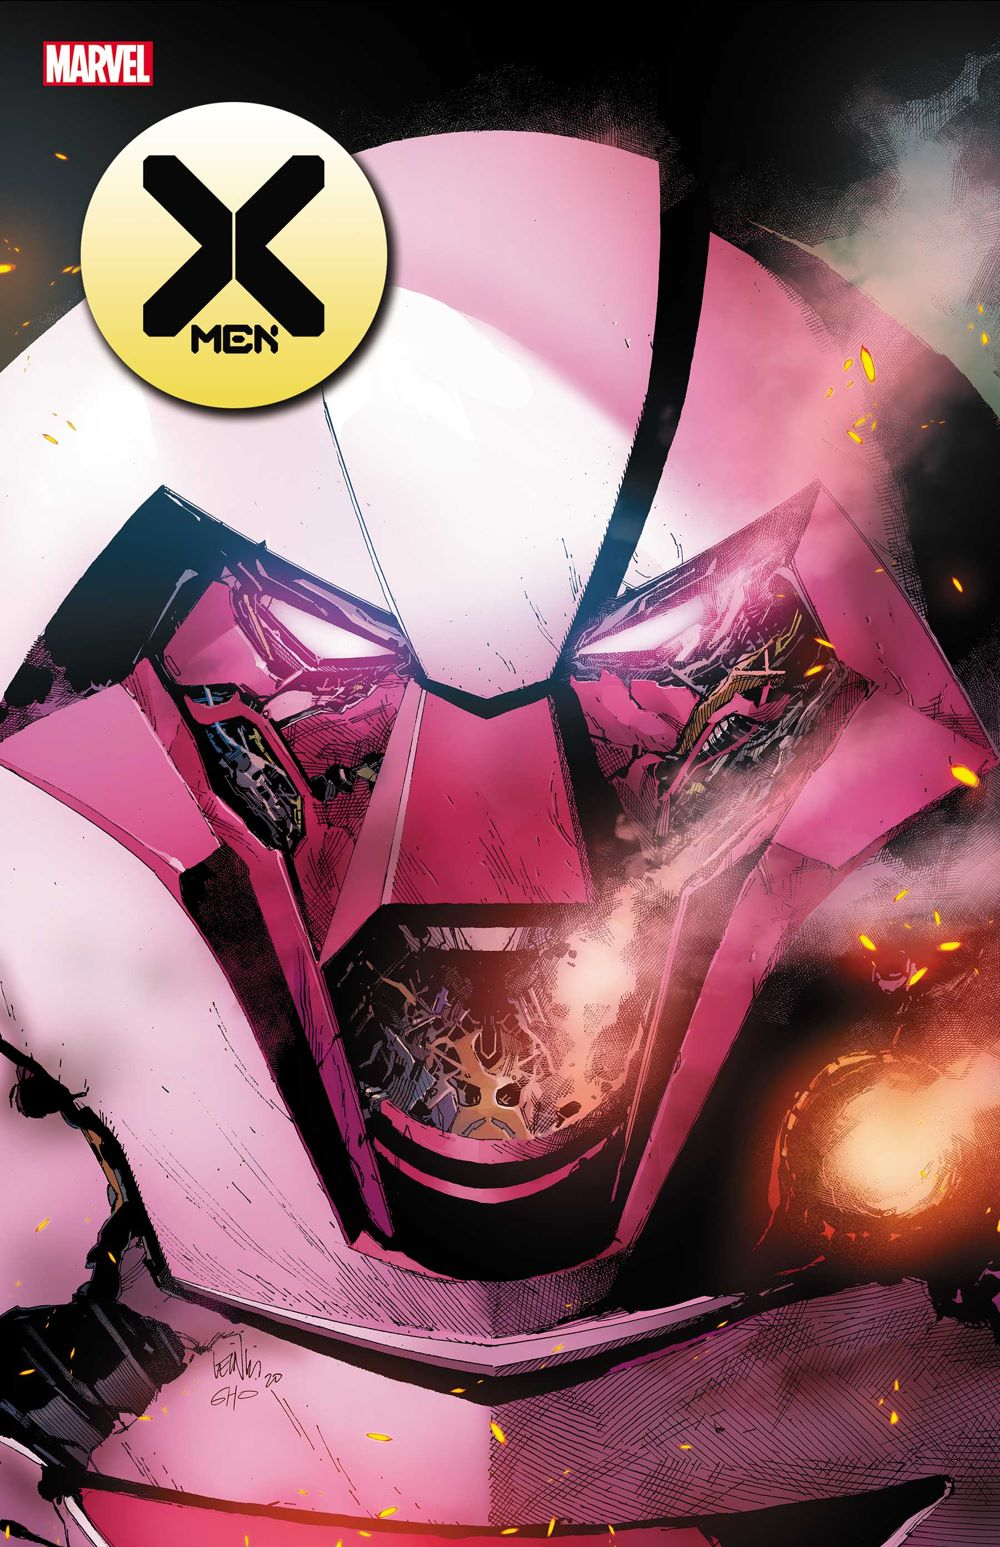 XMEN2019020_cov Ongoing X-MEN and X-FACTOR series return this May